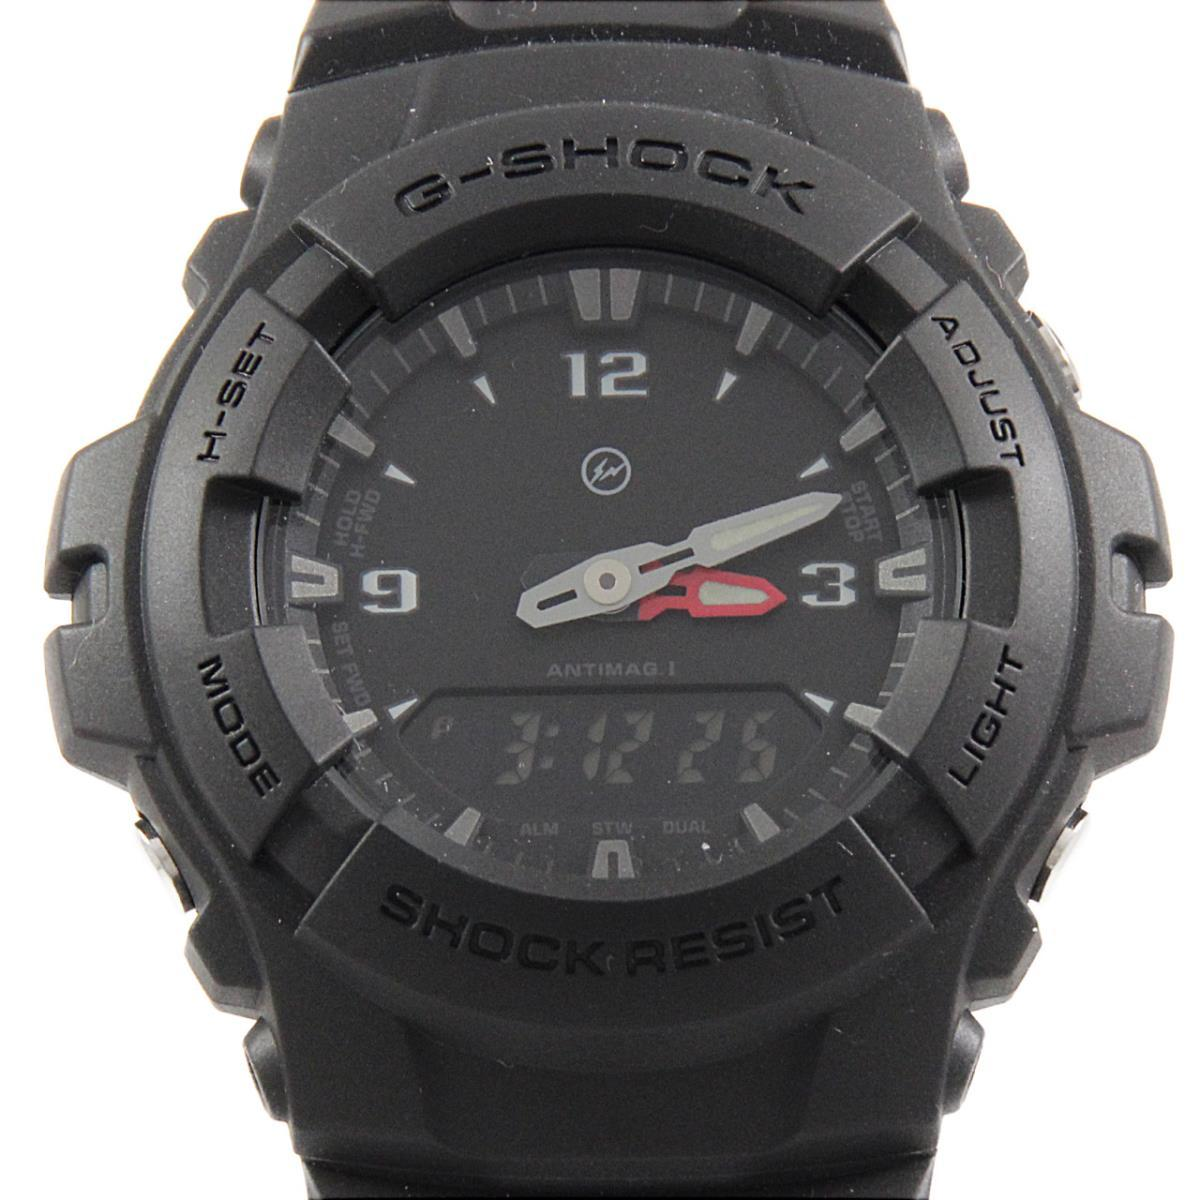 カシオ G-100-1BJF G-SHOCK・FRAGMENT クォーツ